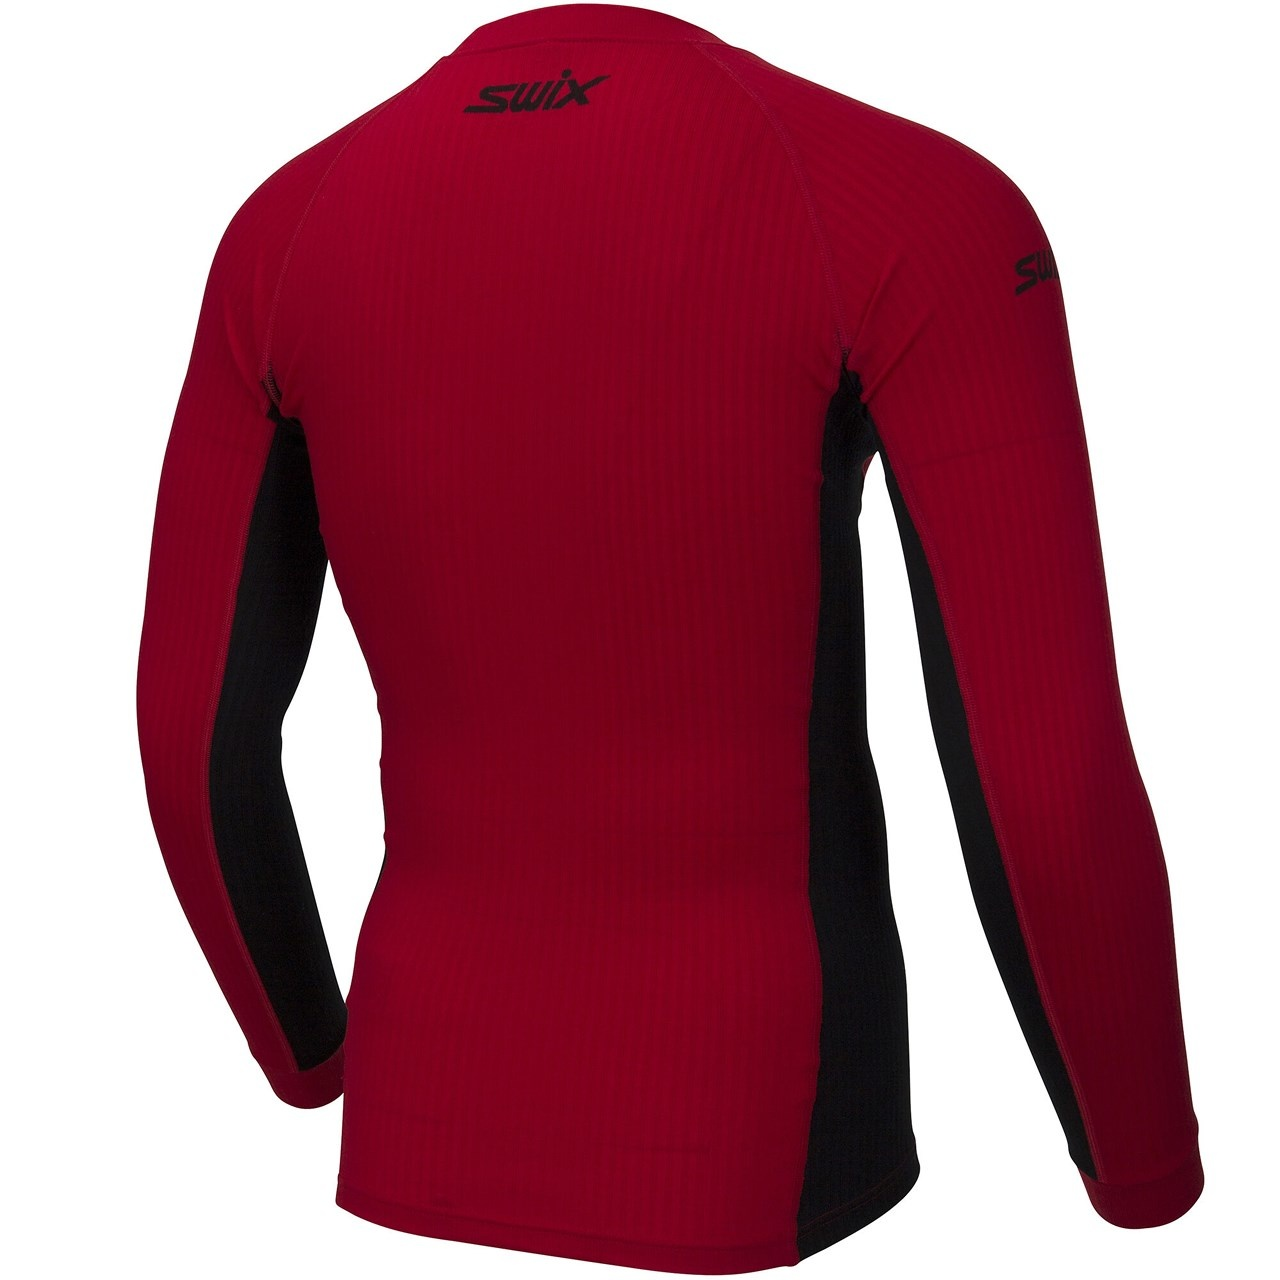 RaceX Top, Red